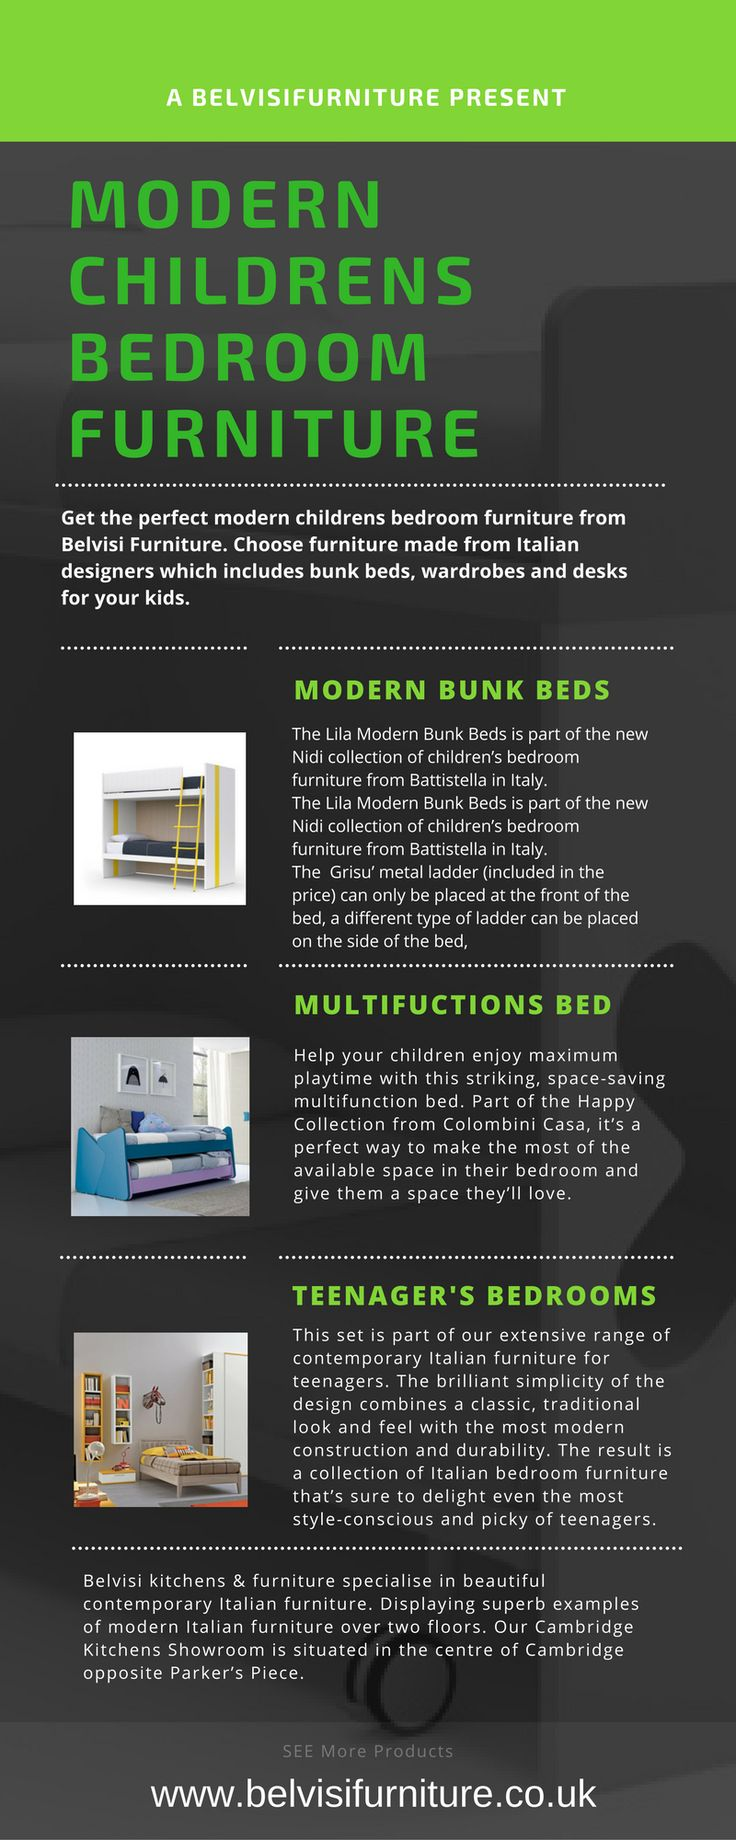 get the perfect modern childrens bedroom furniture from belvisi furniture choose furniture